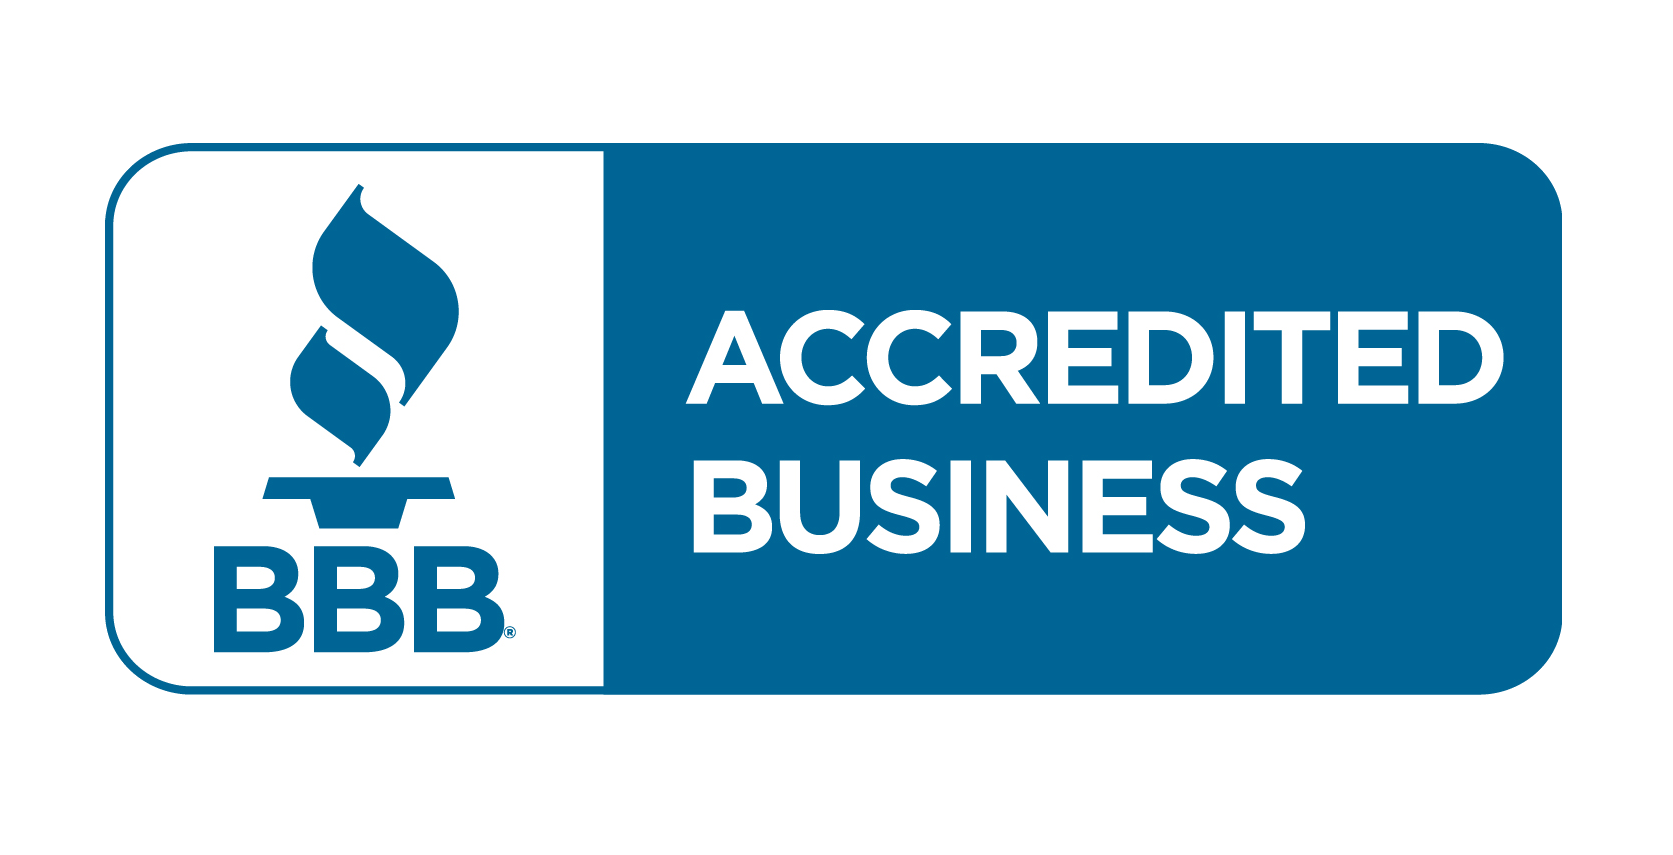 Better Business Beauer - A+ Accredited